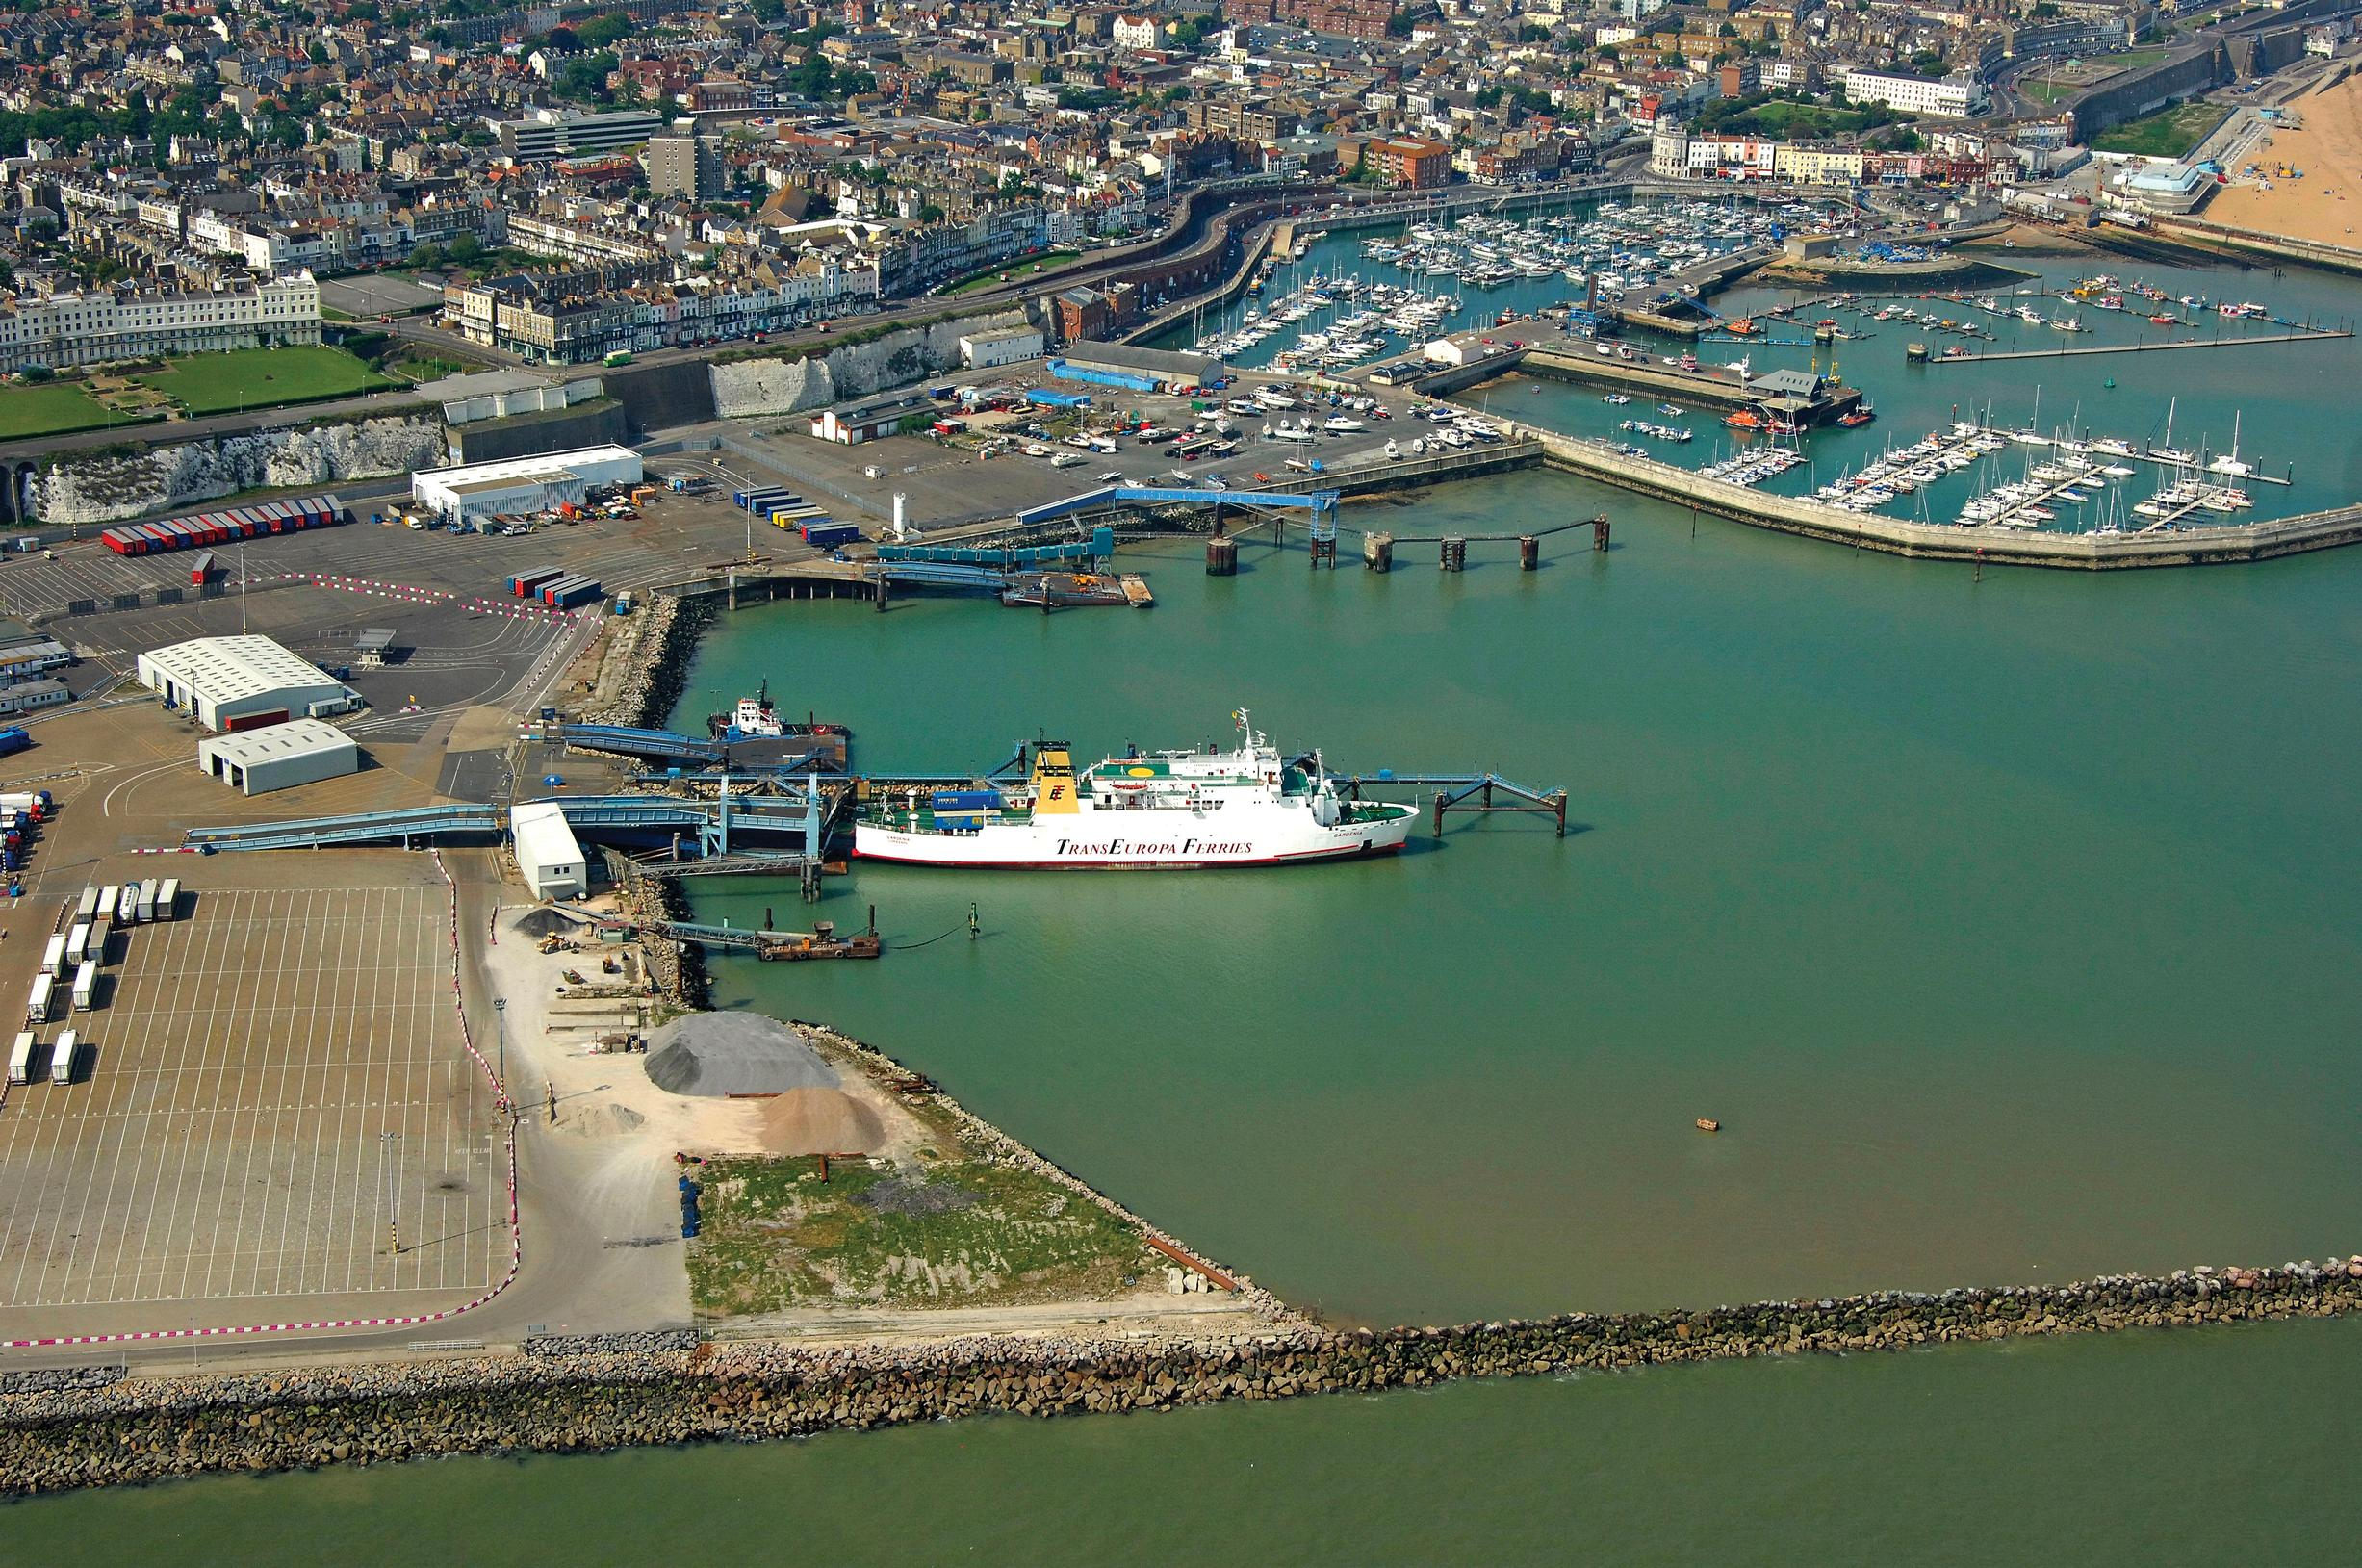 Ramsgate: ferries to return, deal or no-deal